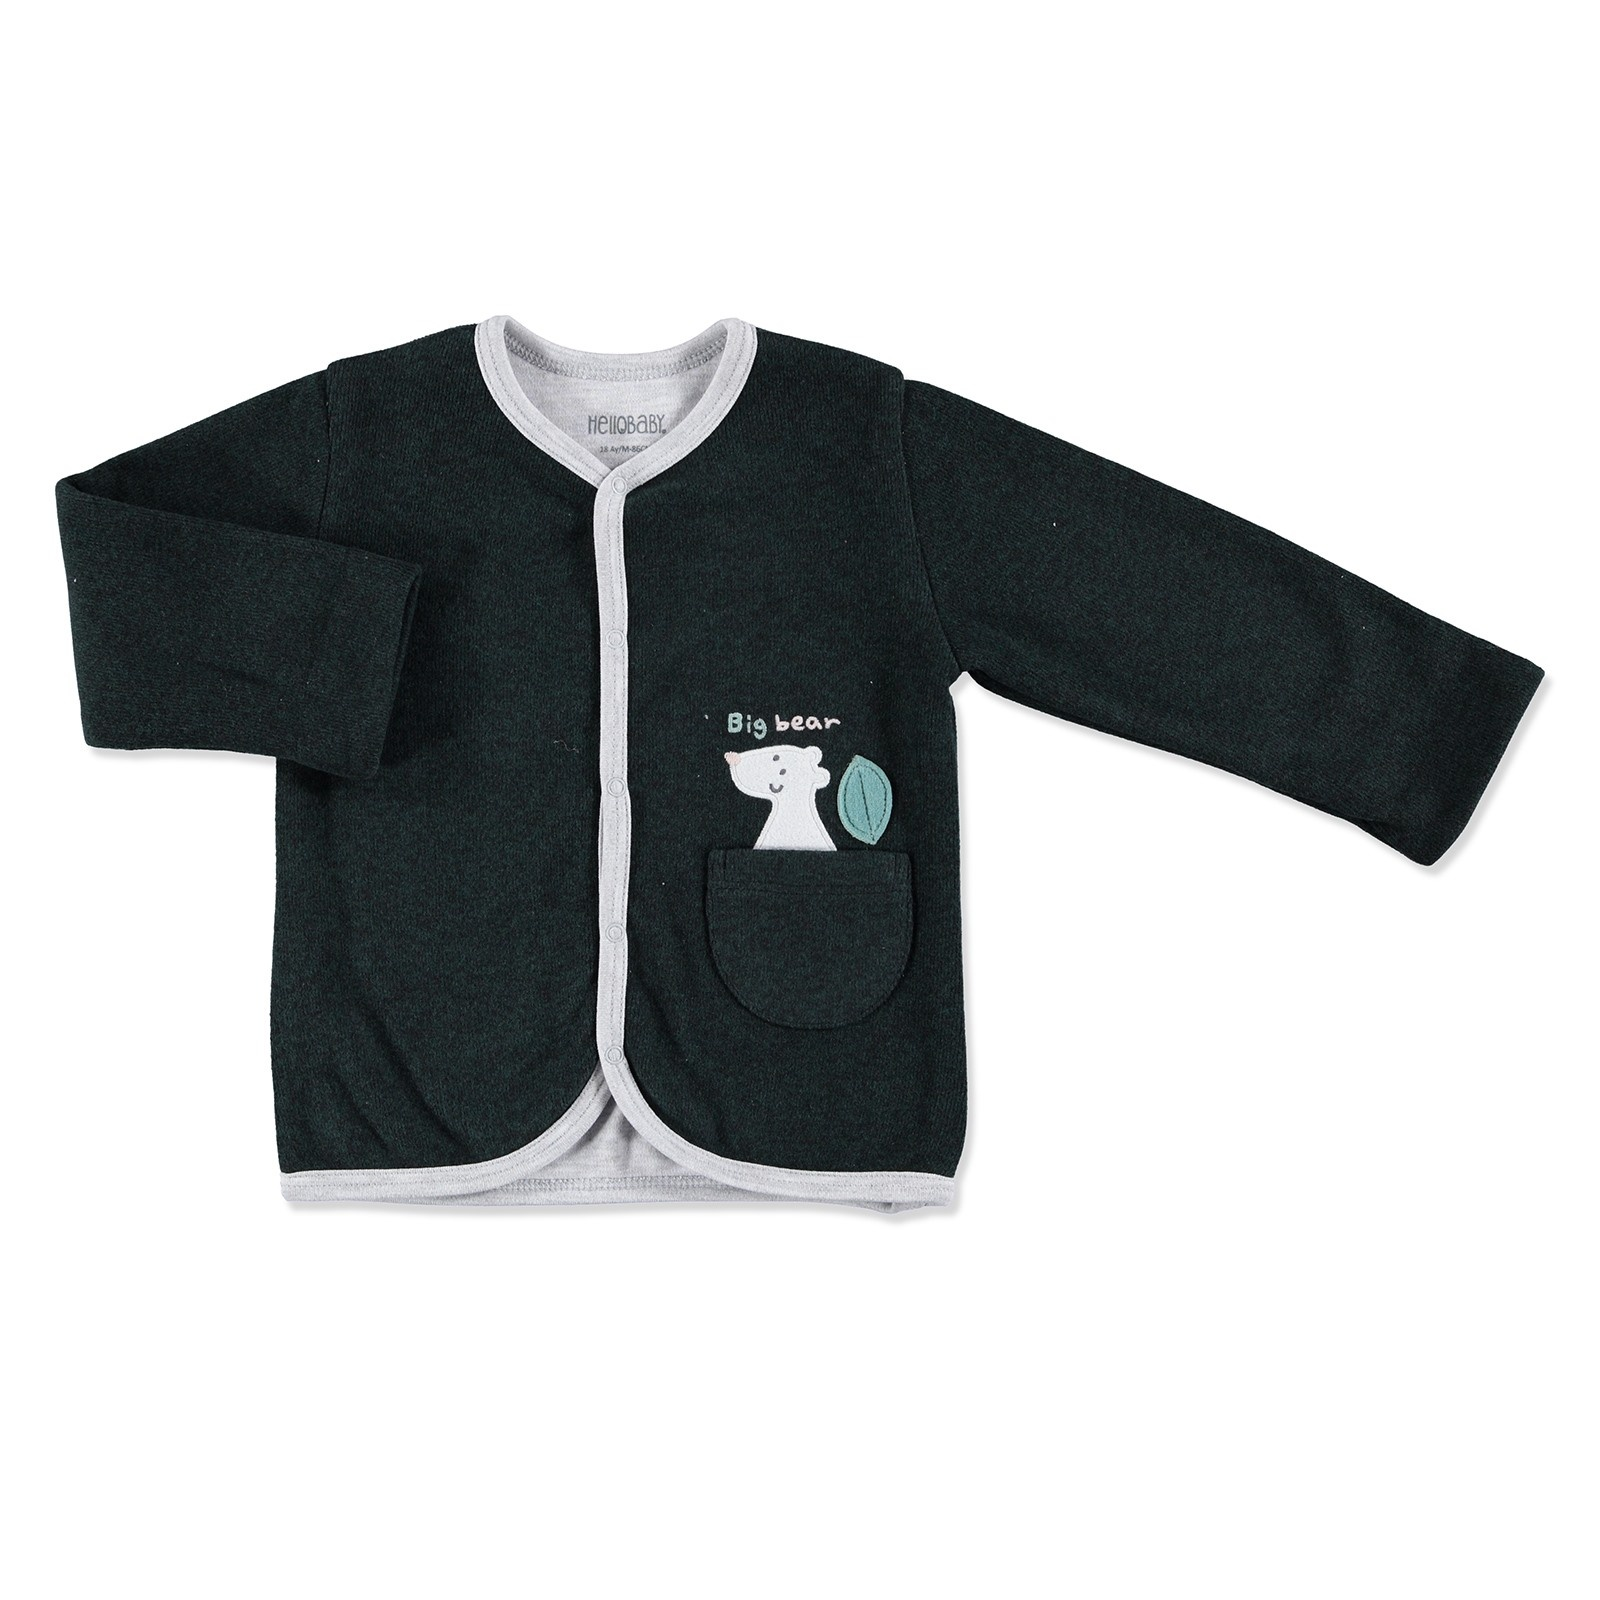 Ebebek HelloBaby Forest Party Baby Cardigan